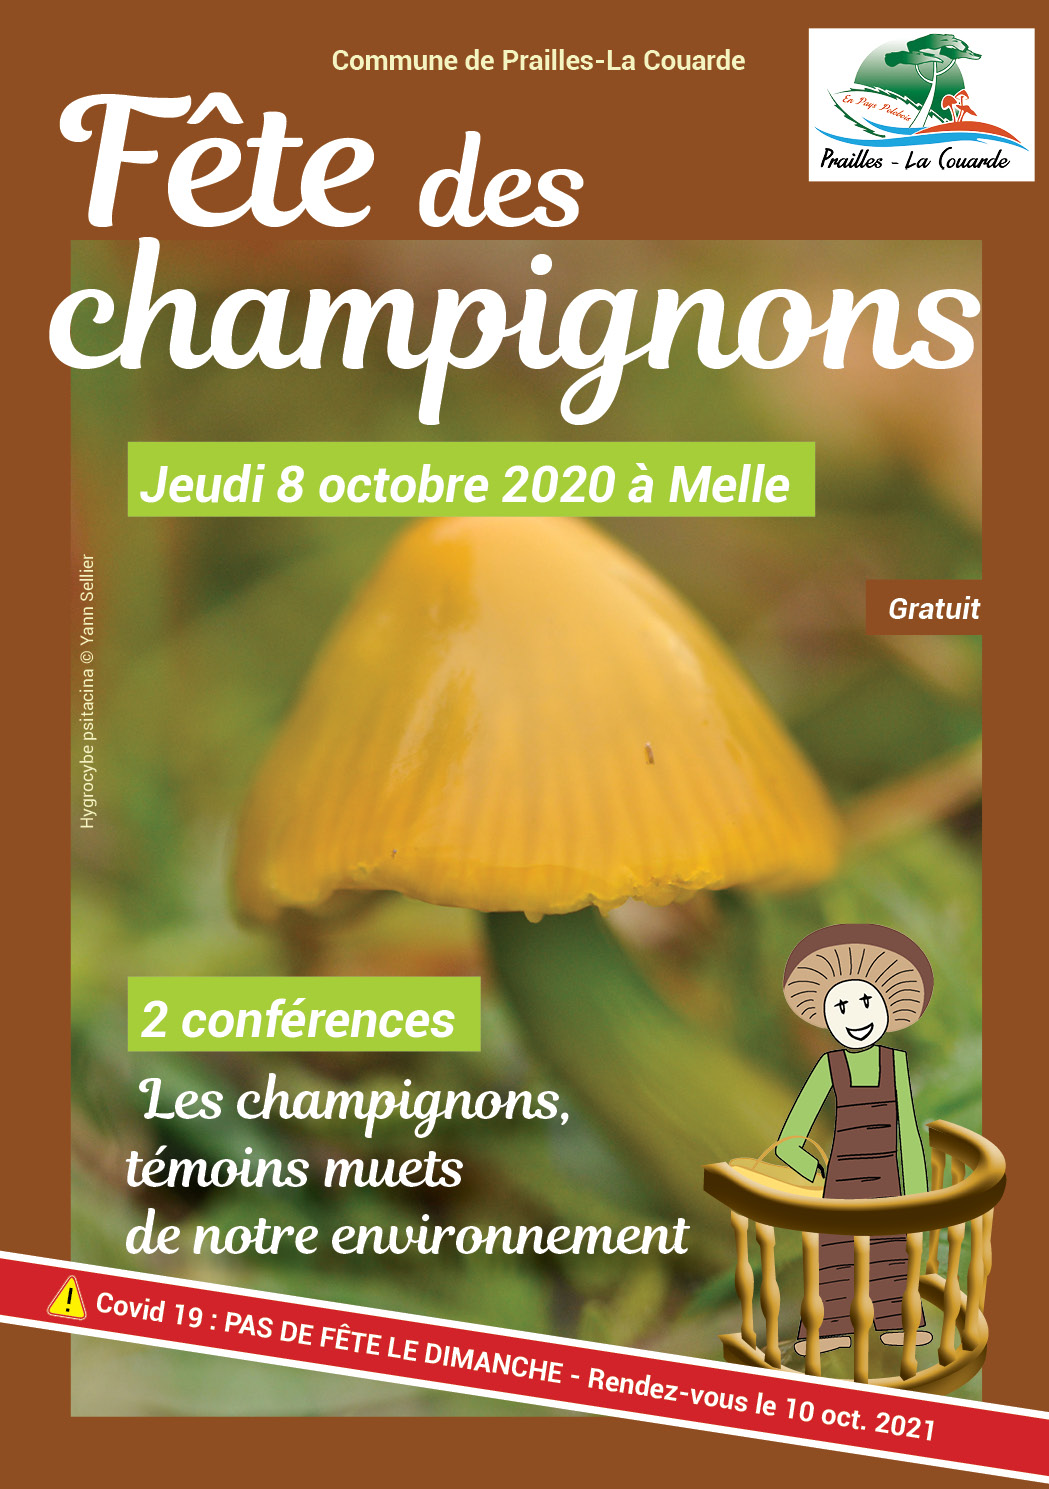 FeteChampignons-PraillesLaCouarde2020-Tract-Conference-Recto.jpg